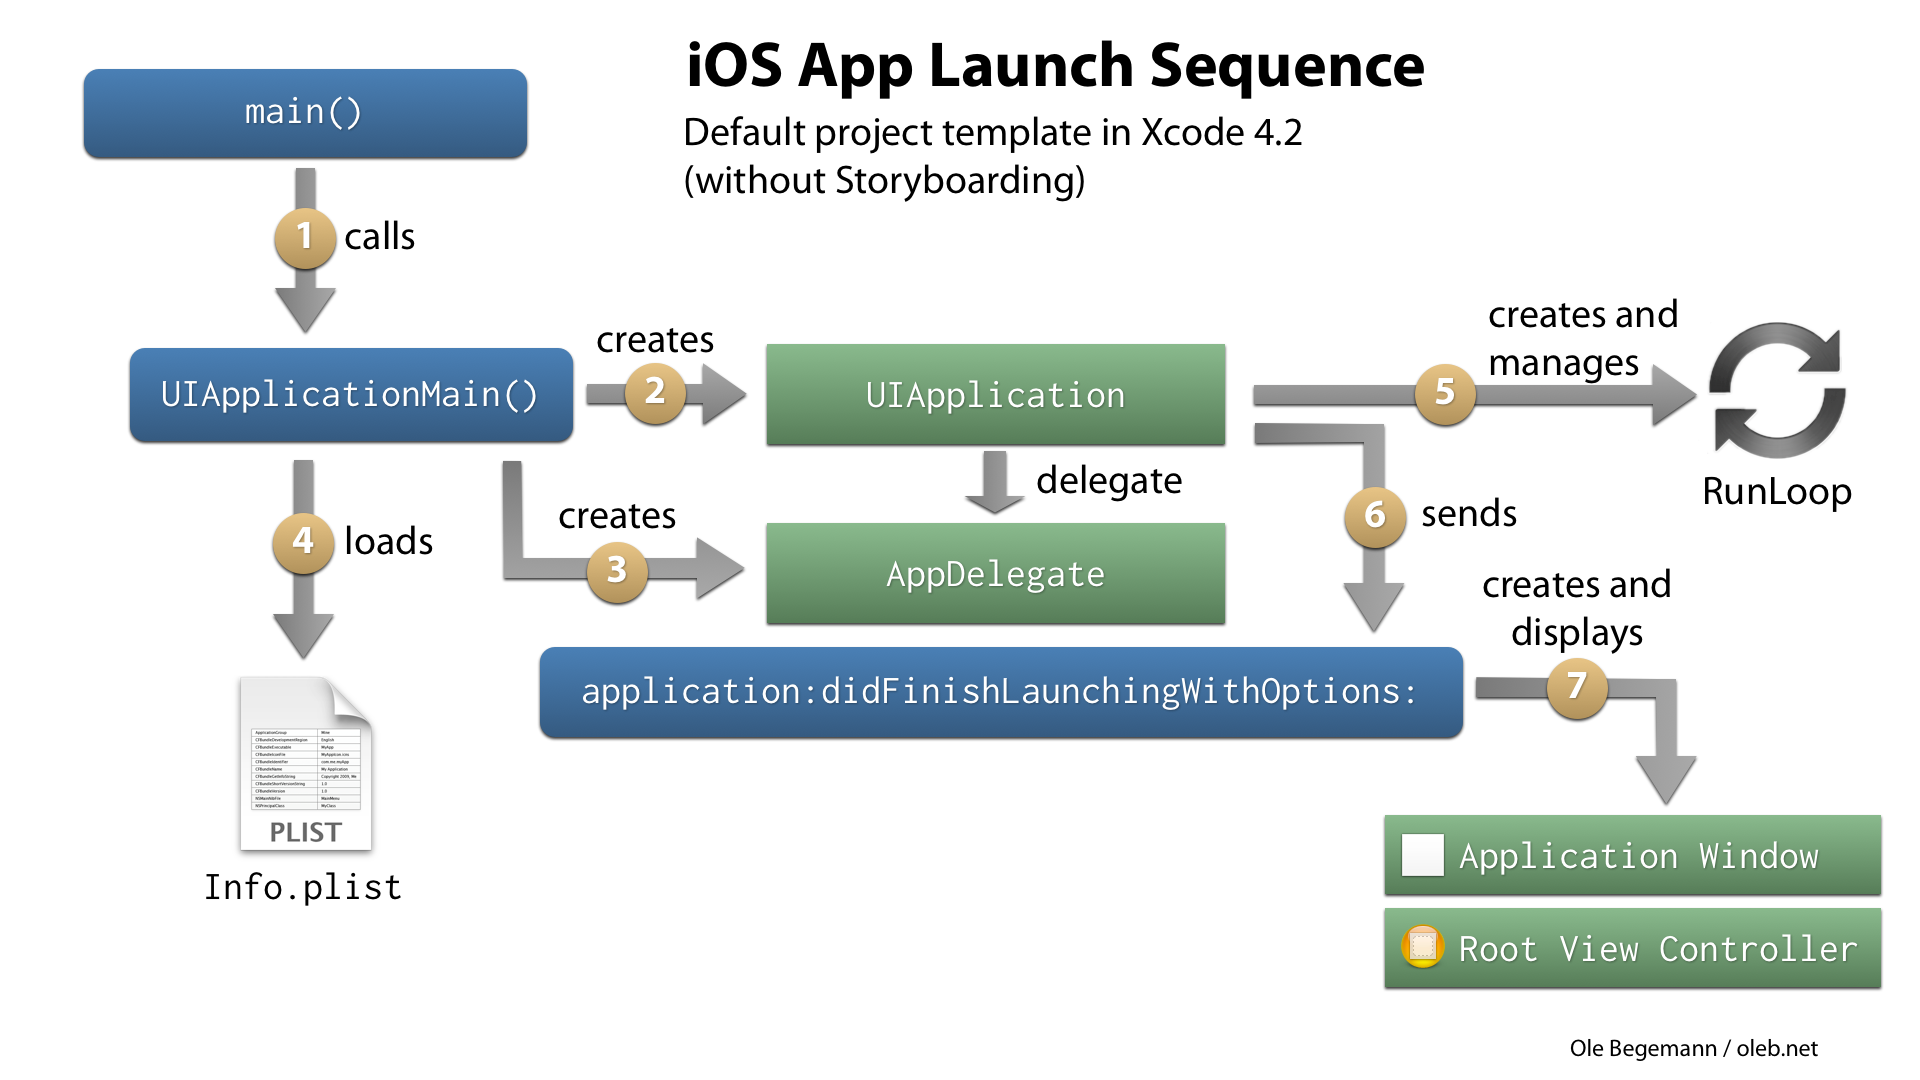 App Launch Sequence as of Xcode 4.2 (without Storyboarding)